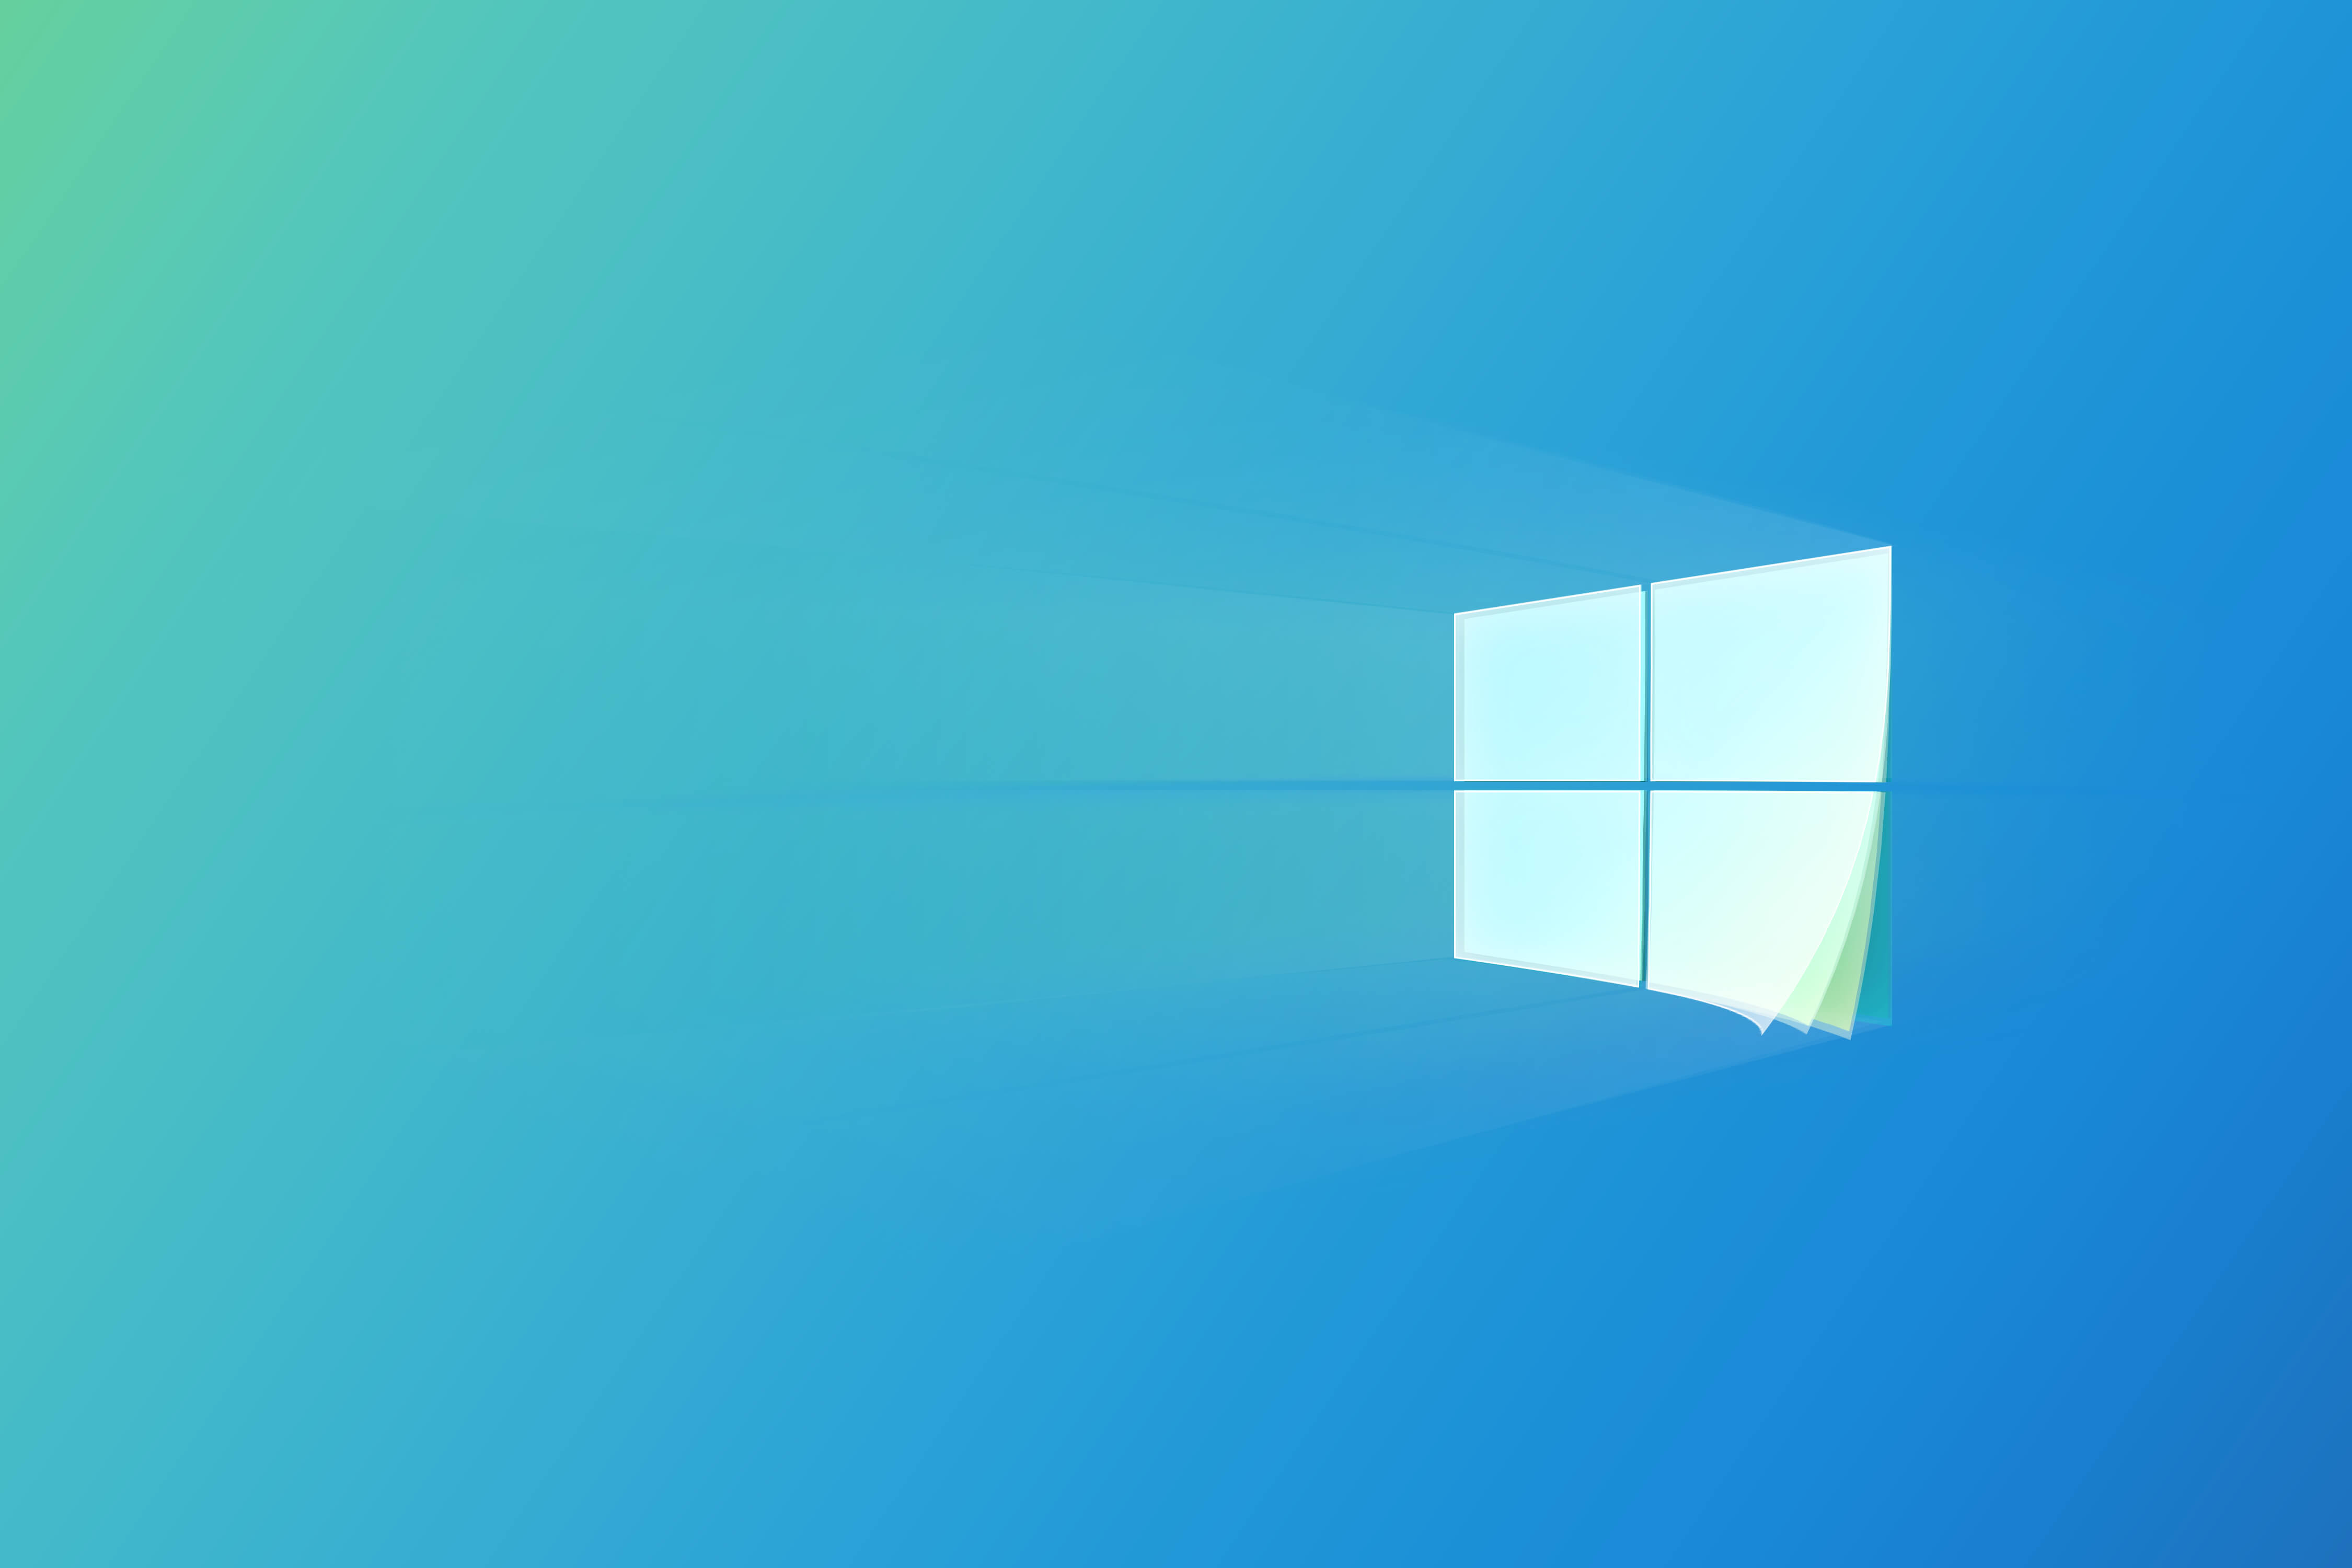 Windows 10 Edge Fluent By Genrole Caspe Wallpapers Wallpaperhub